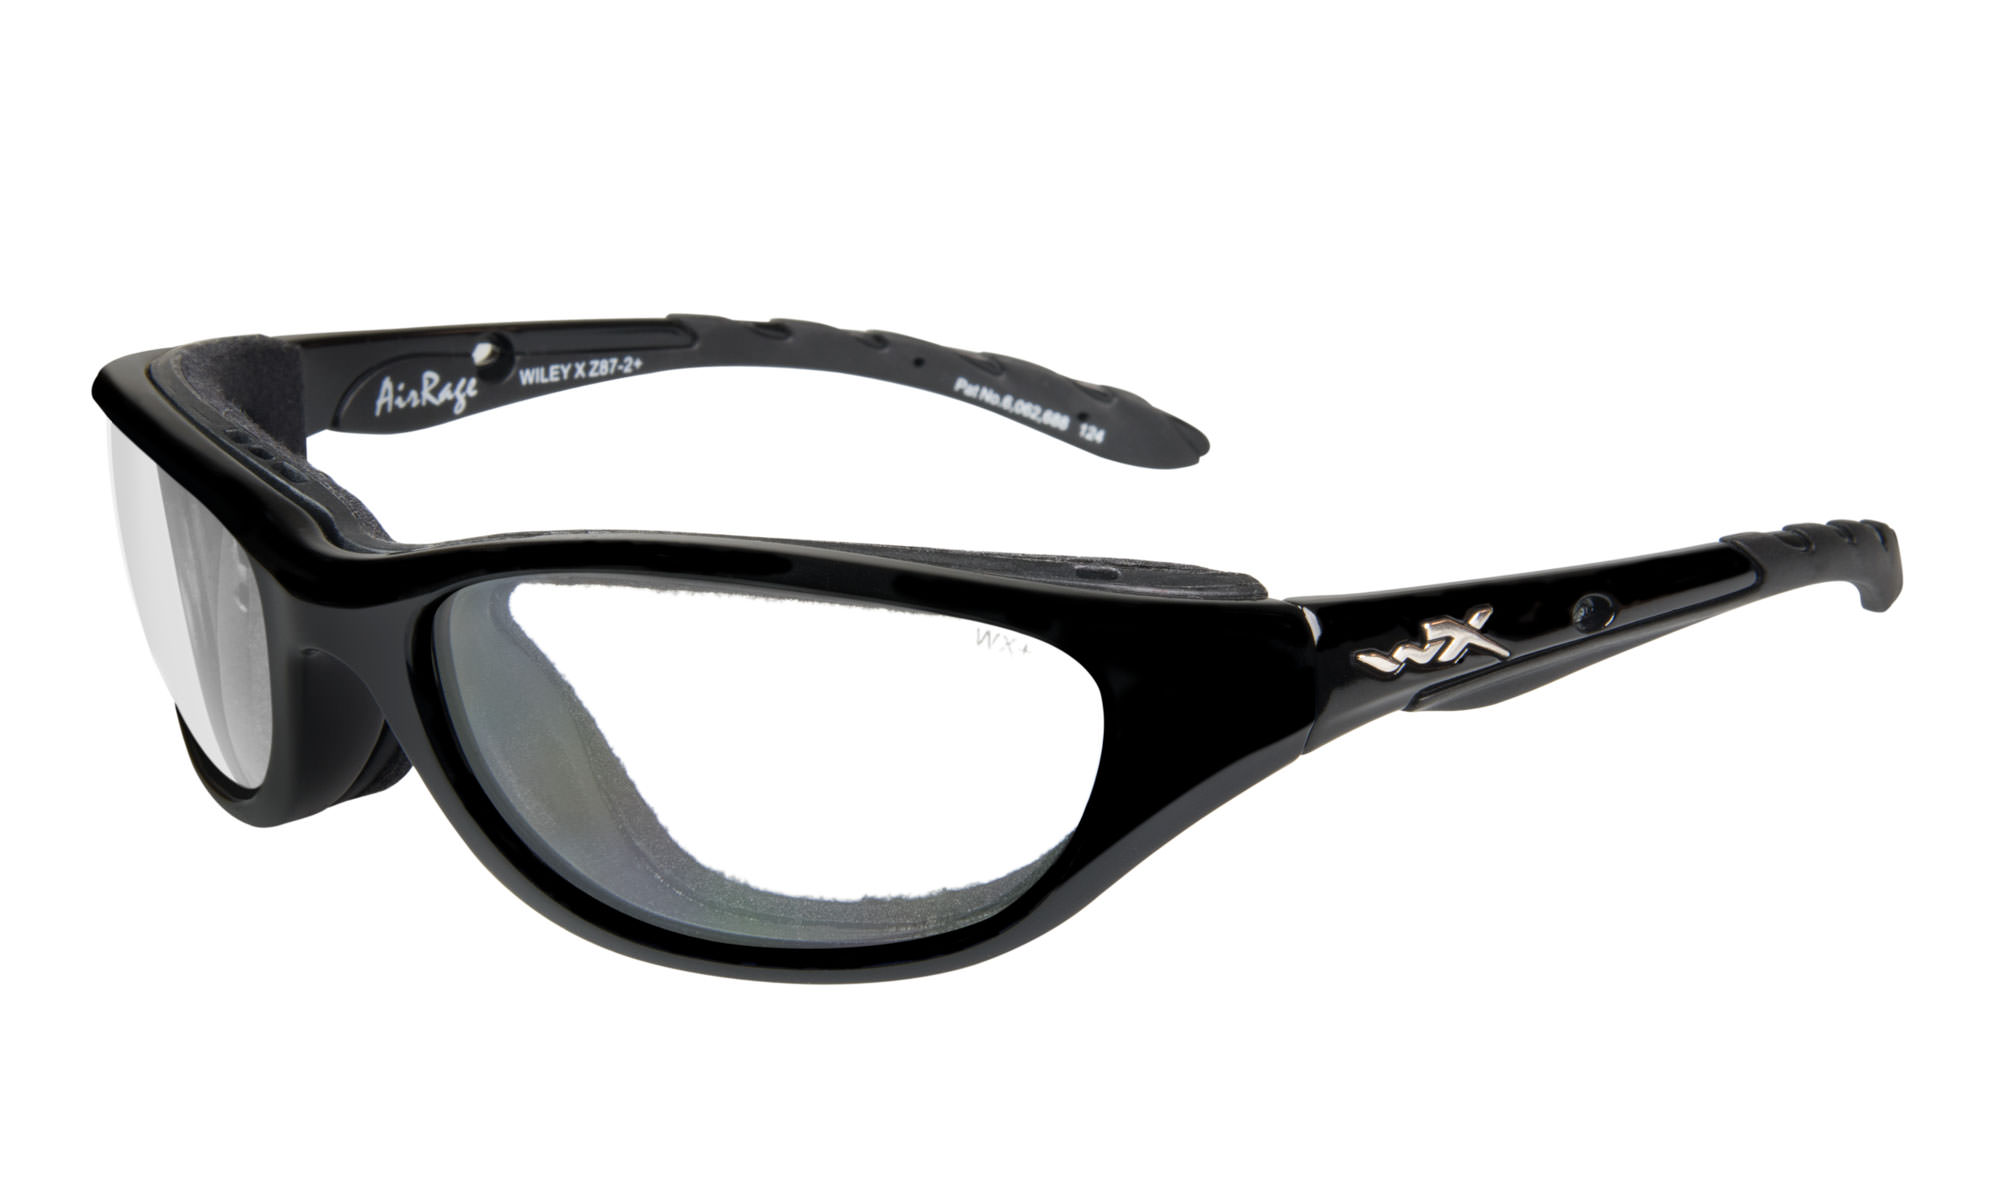 5171b3c34c98 Wiley-X Airrage Gloss Black with Clear Lenses | Wiley X